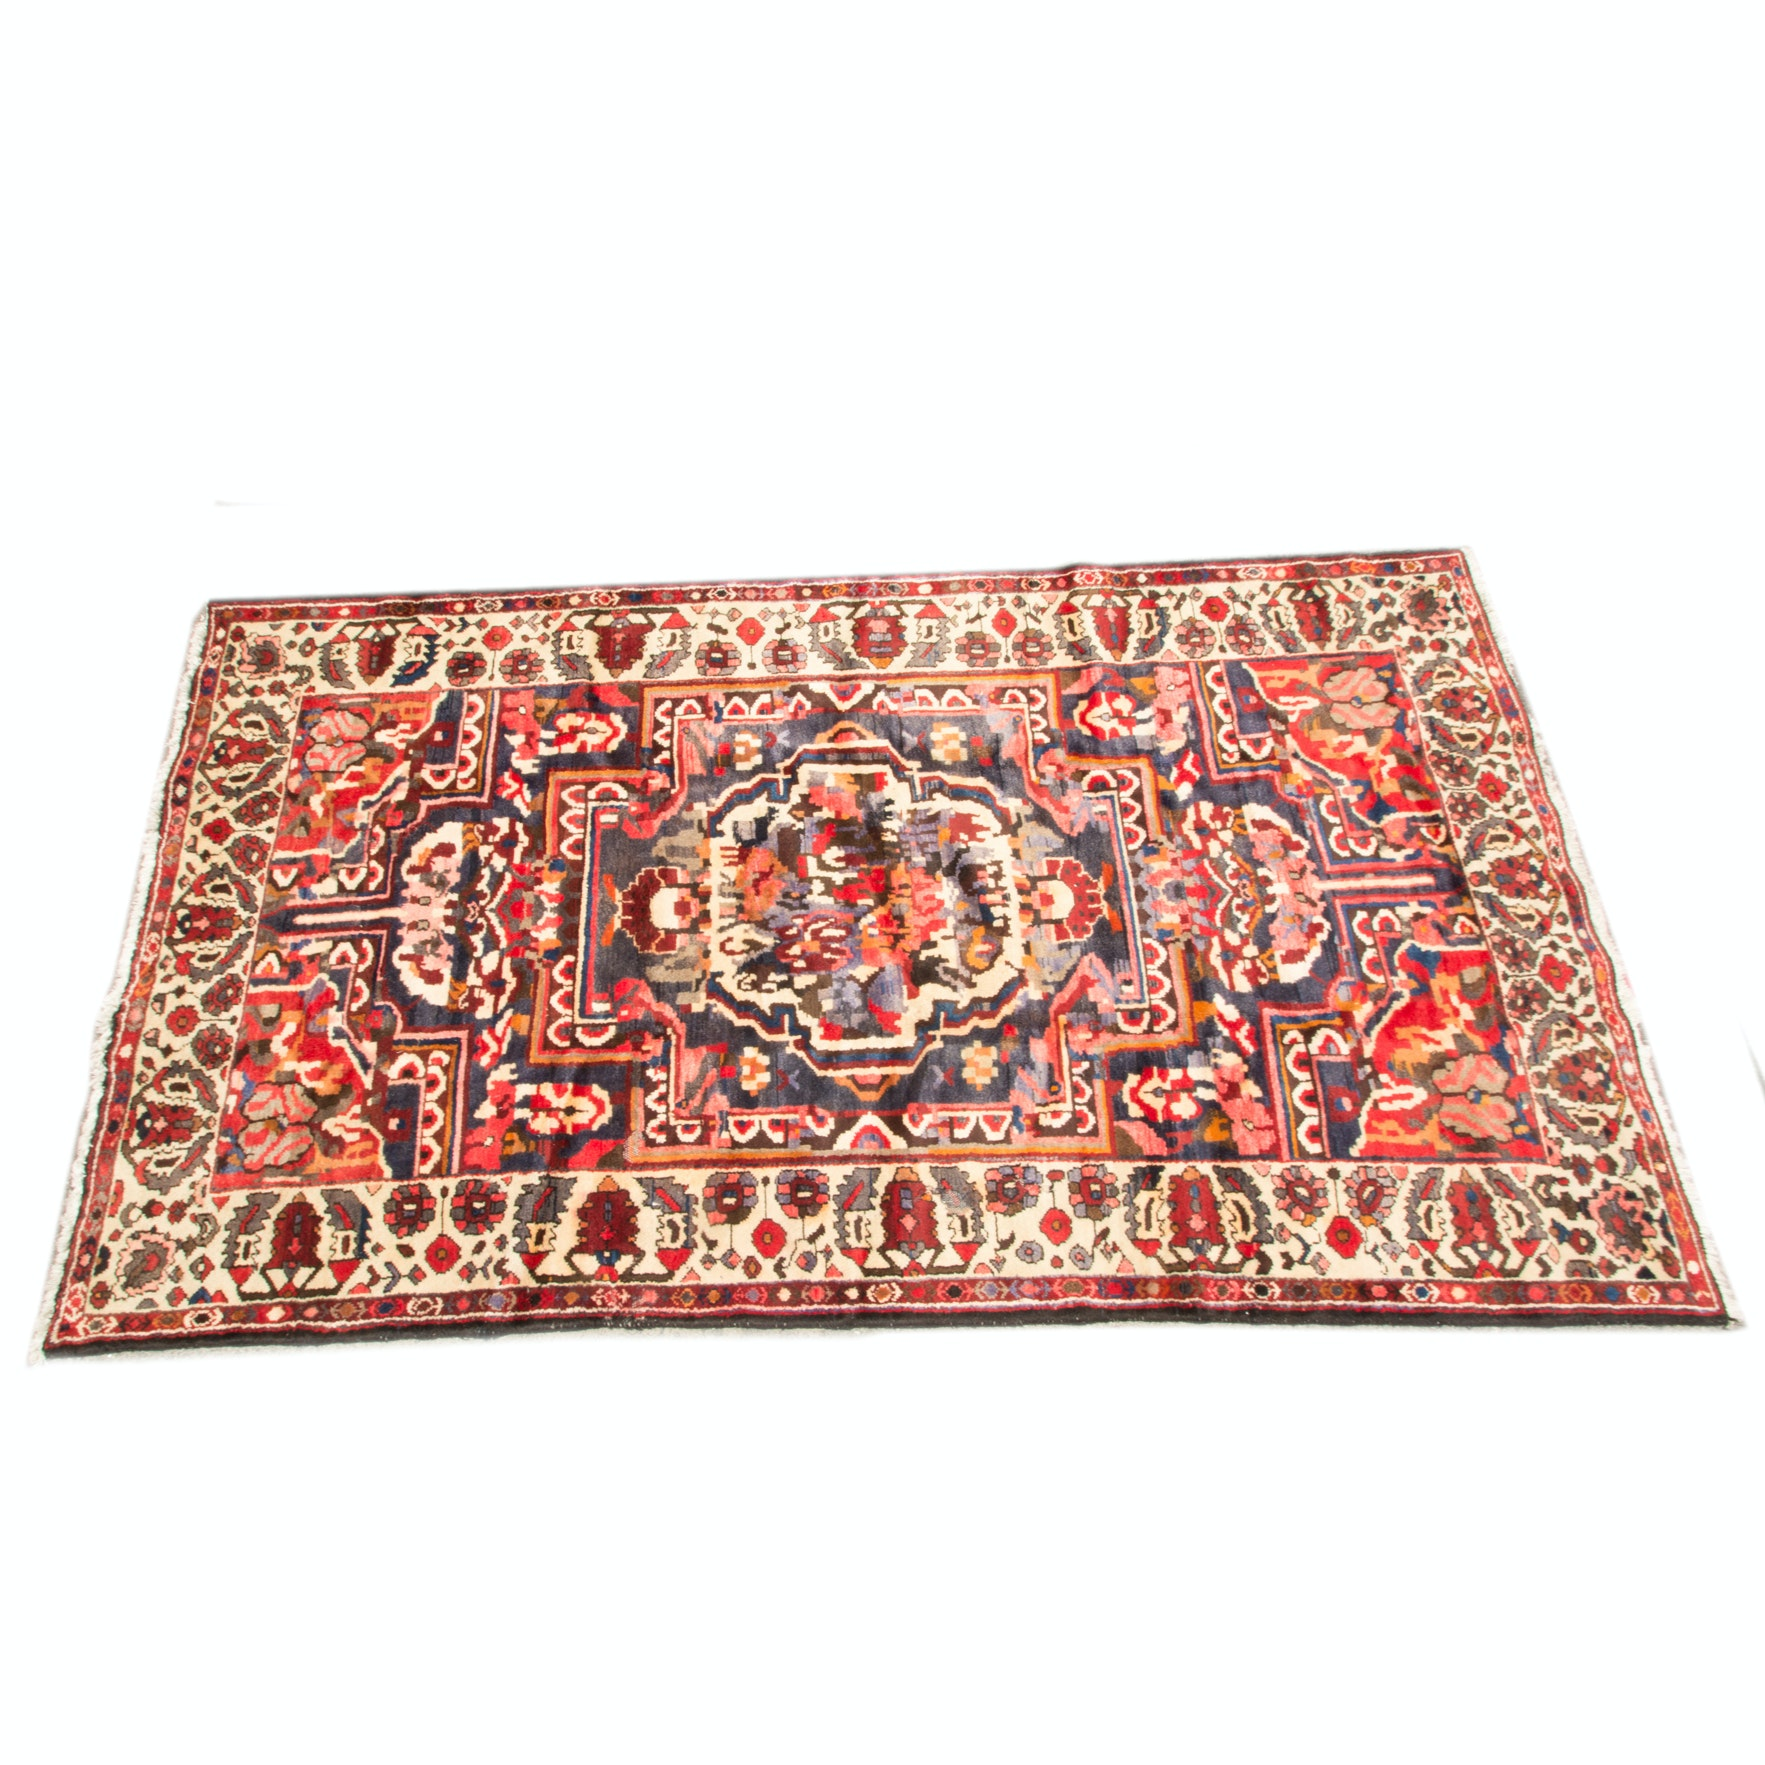 Hand-Knotted Bakhtiari Wool and Cotton Area Rug